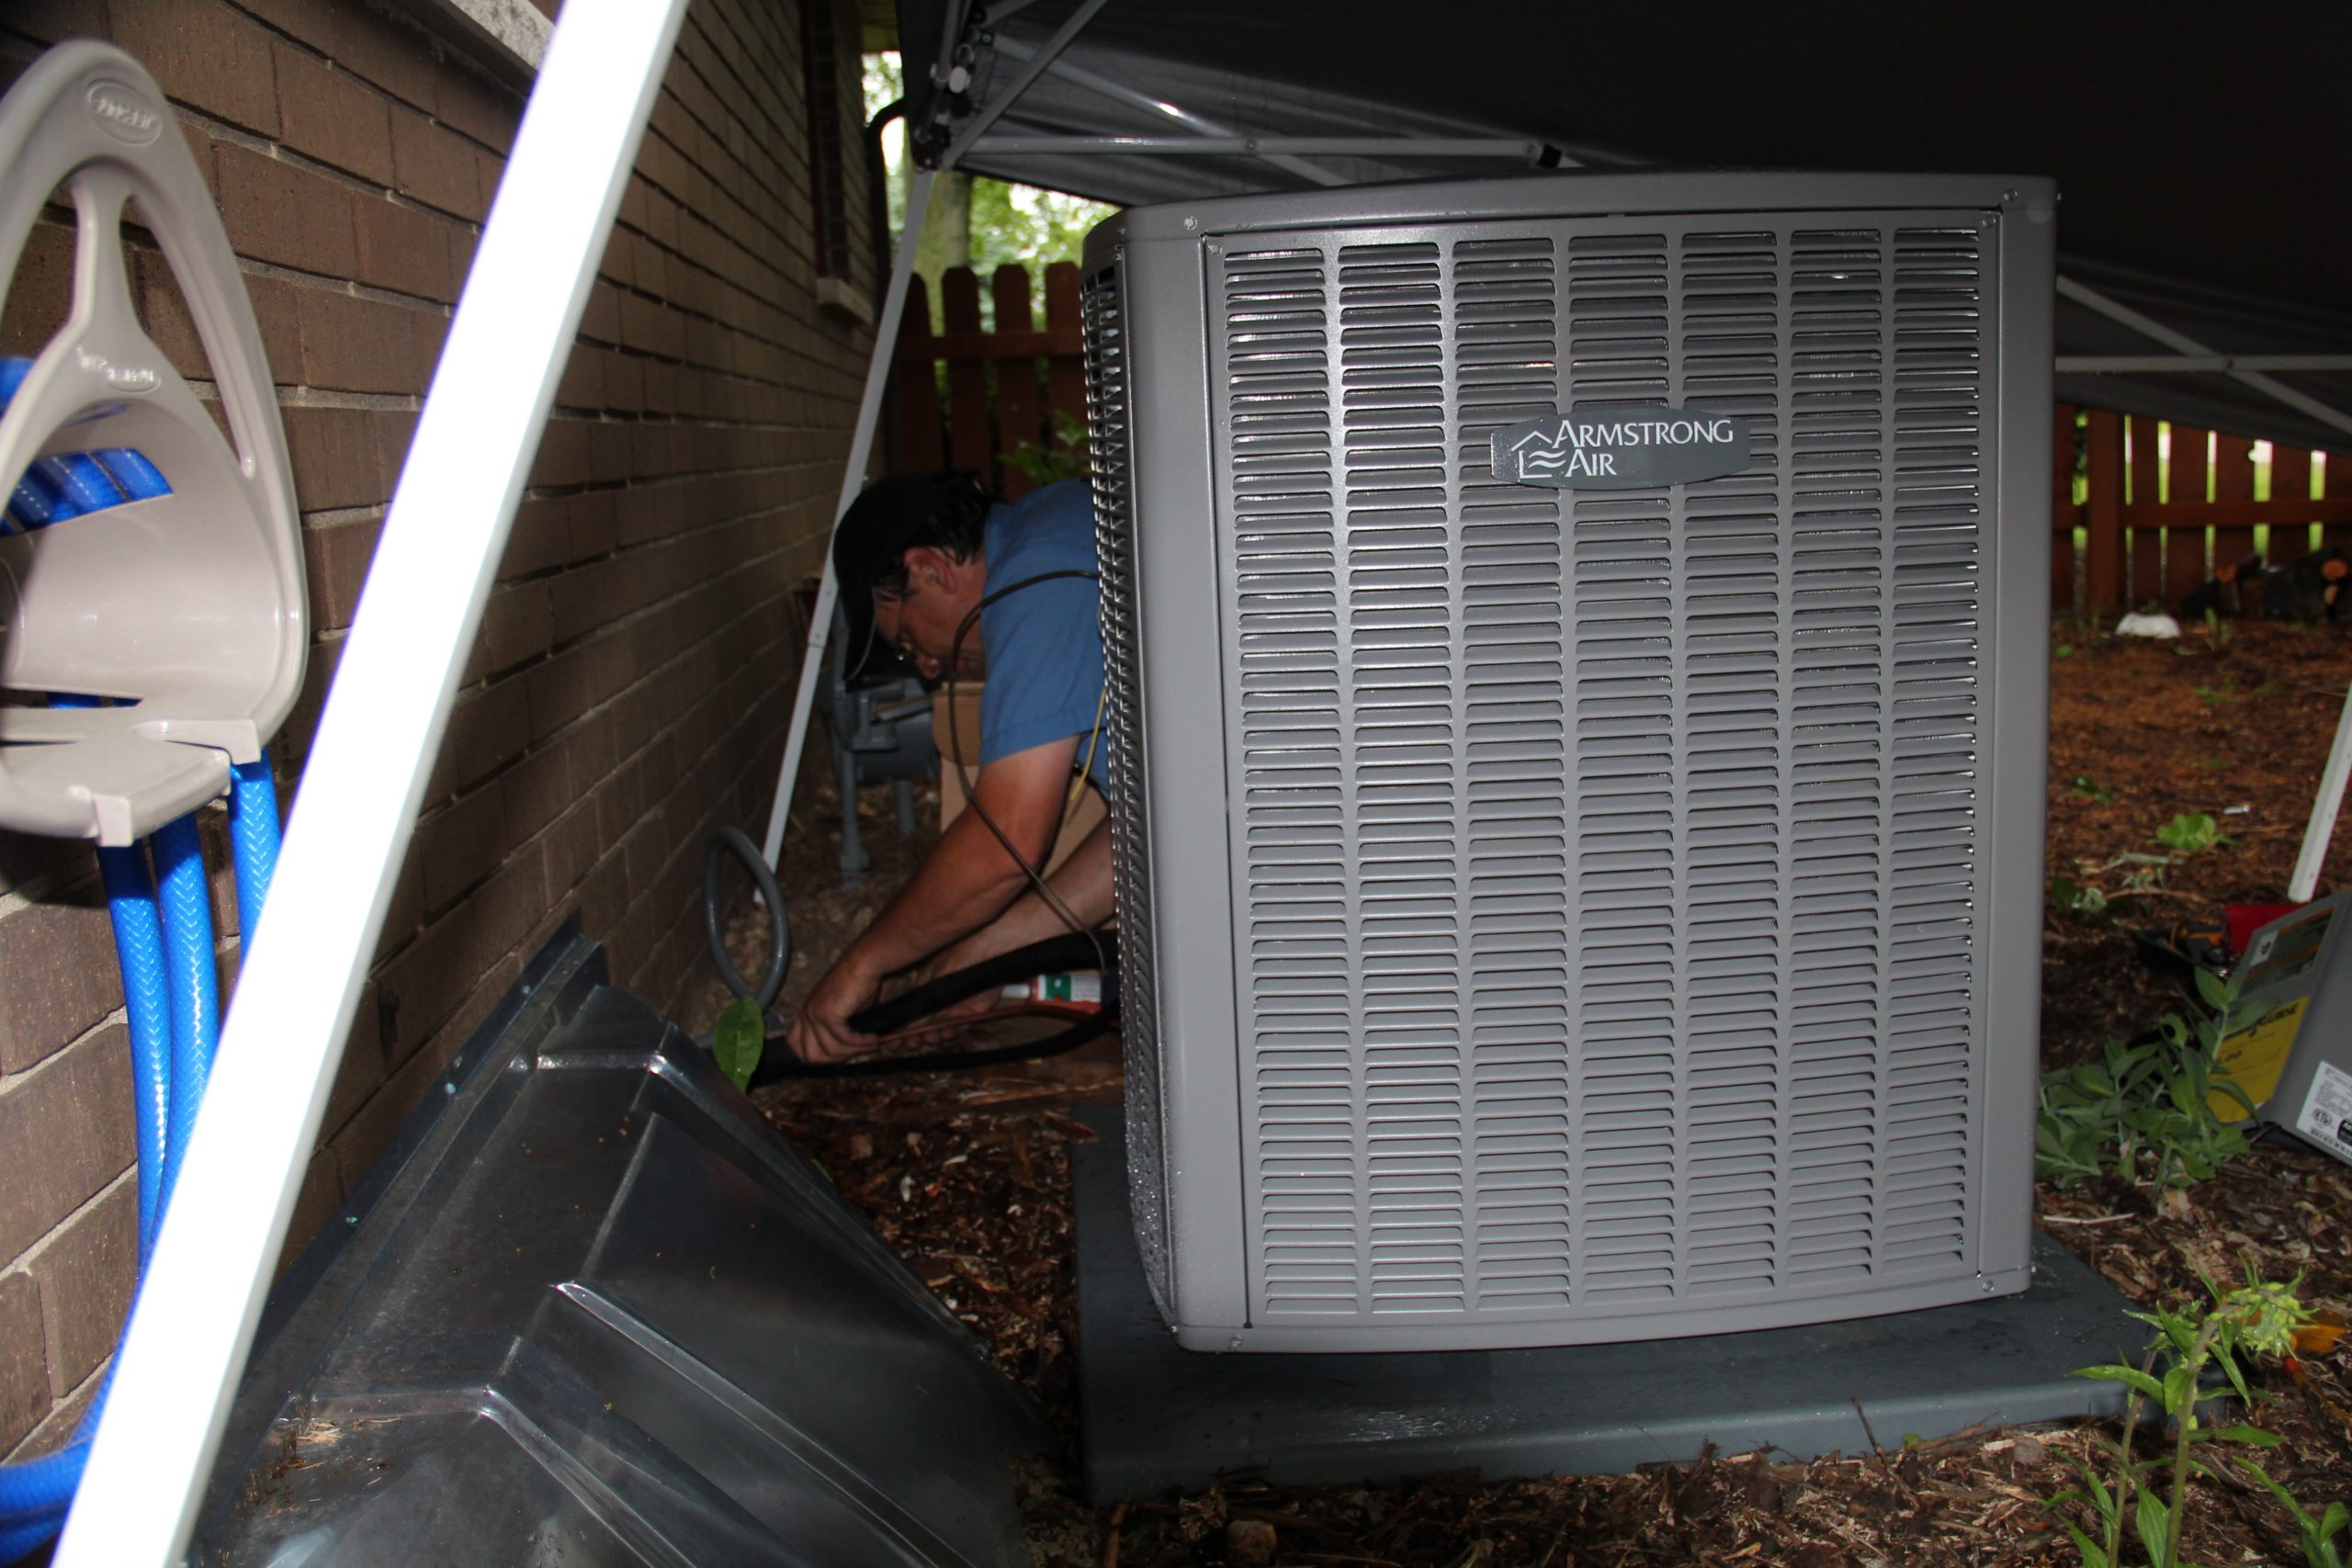 Central Air, Air Conditioning, Repair, Slinger